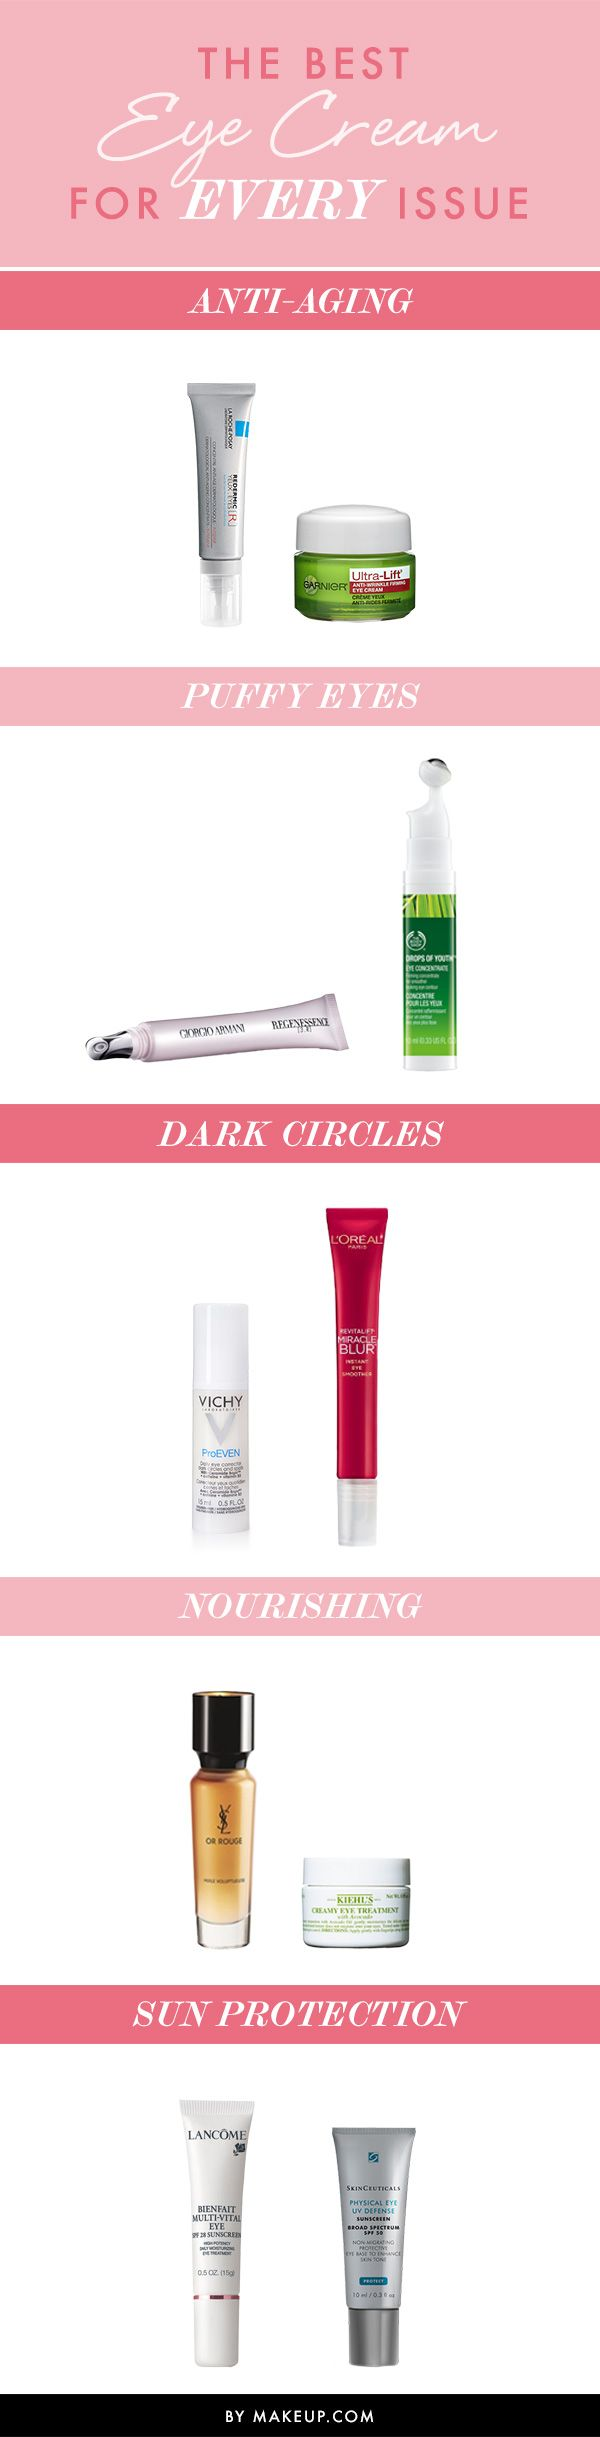 Eyes can give us some problems, but we found the best eye creams for every eye issue! Whether your eyes are sensitive or itchy, here are the best products for you.